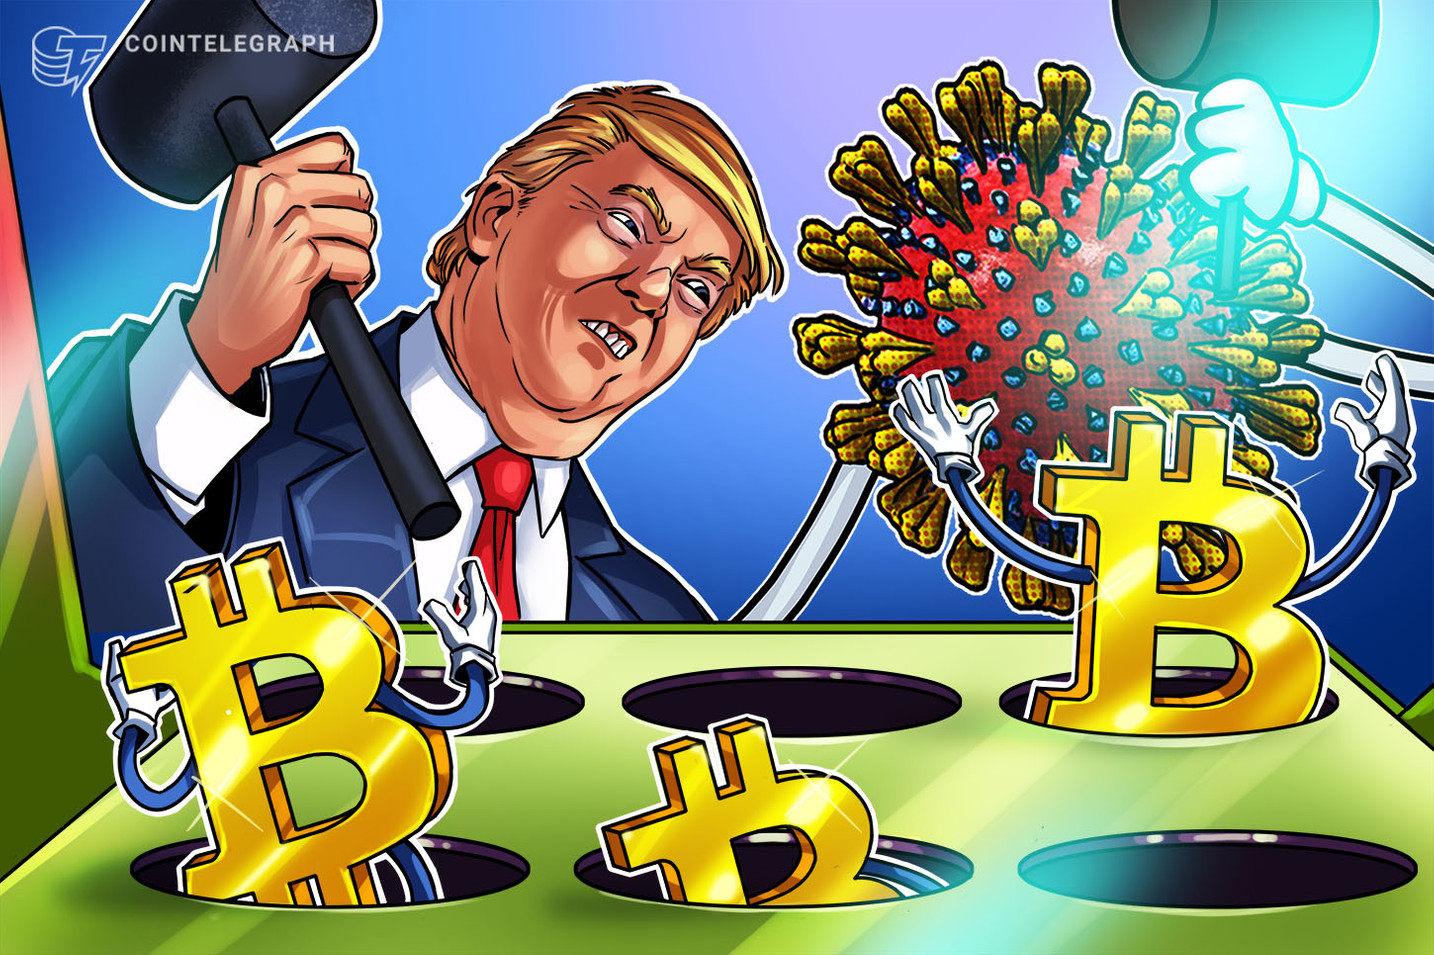 Trump, price dots and COVID-19: 5 things to watch in Bitcoin this week